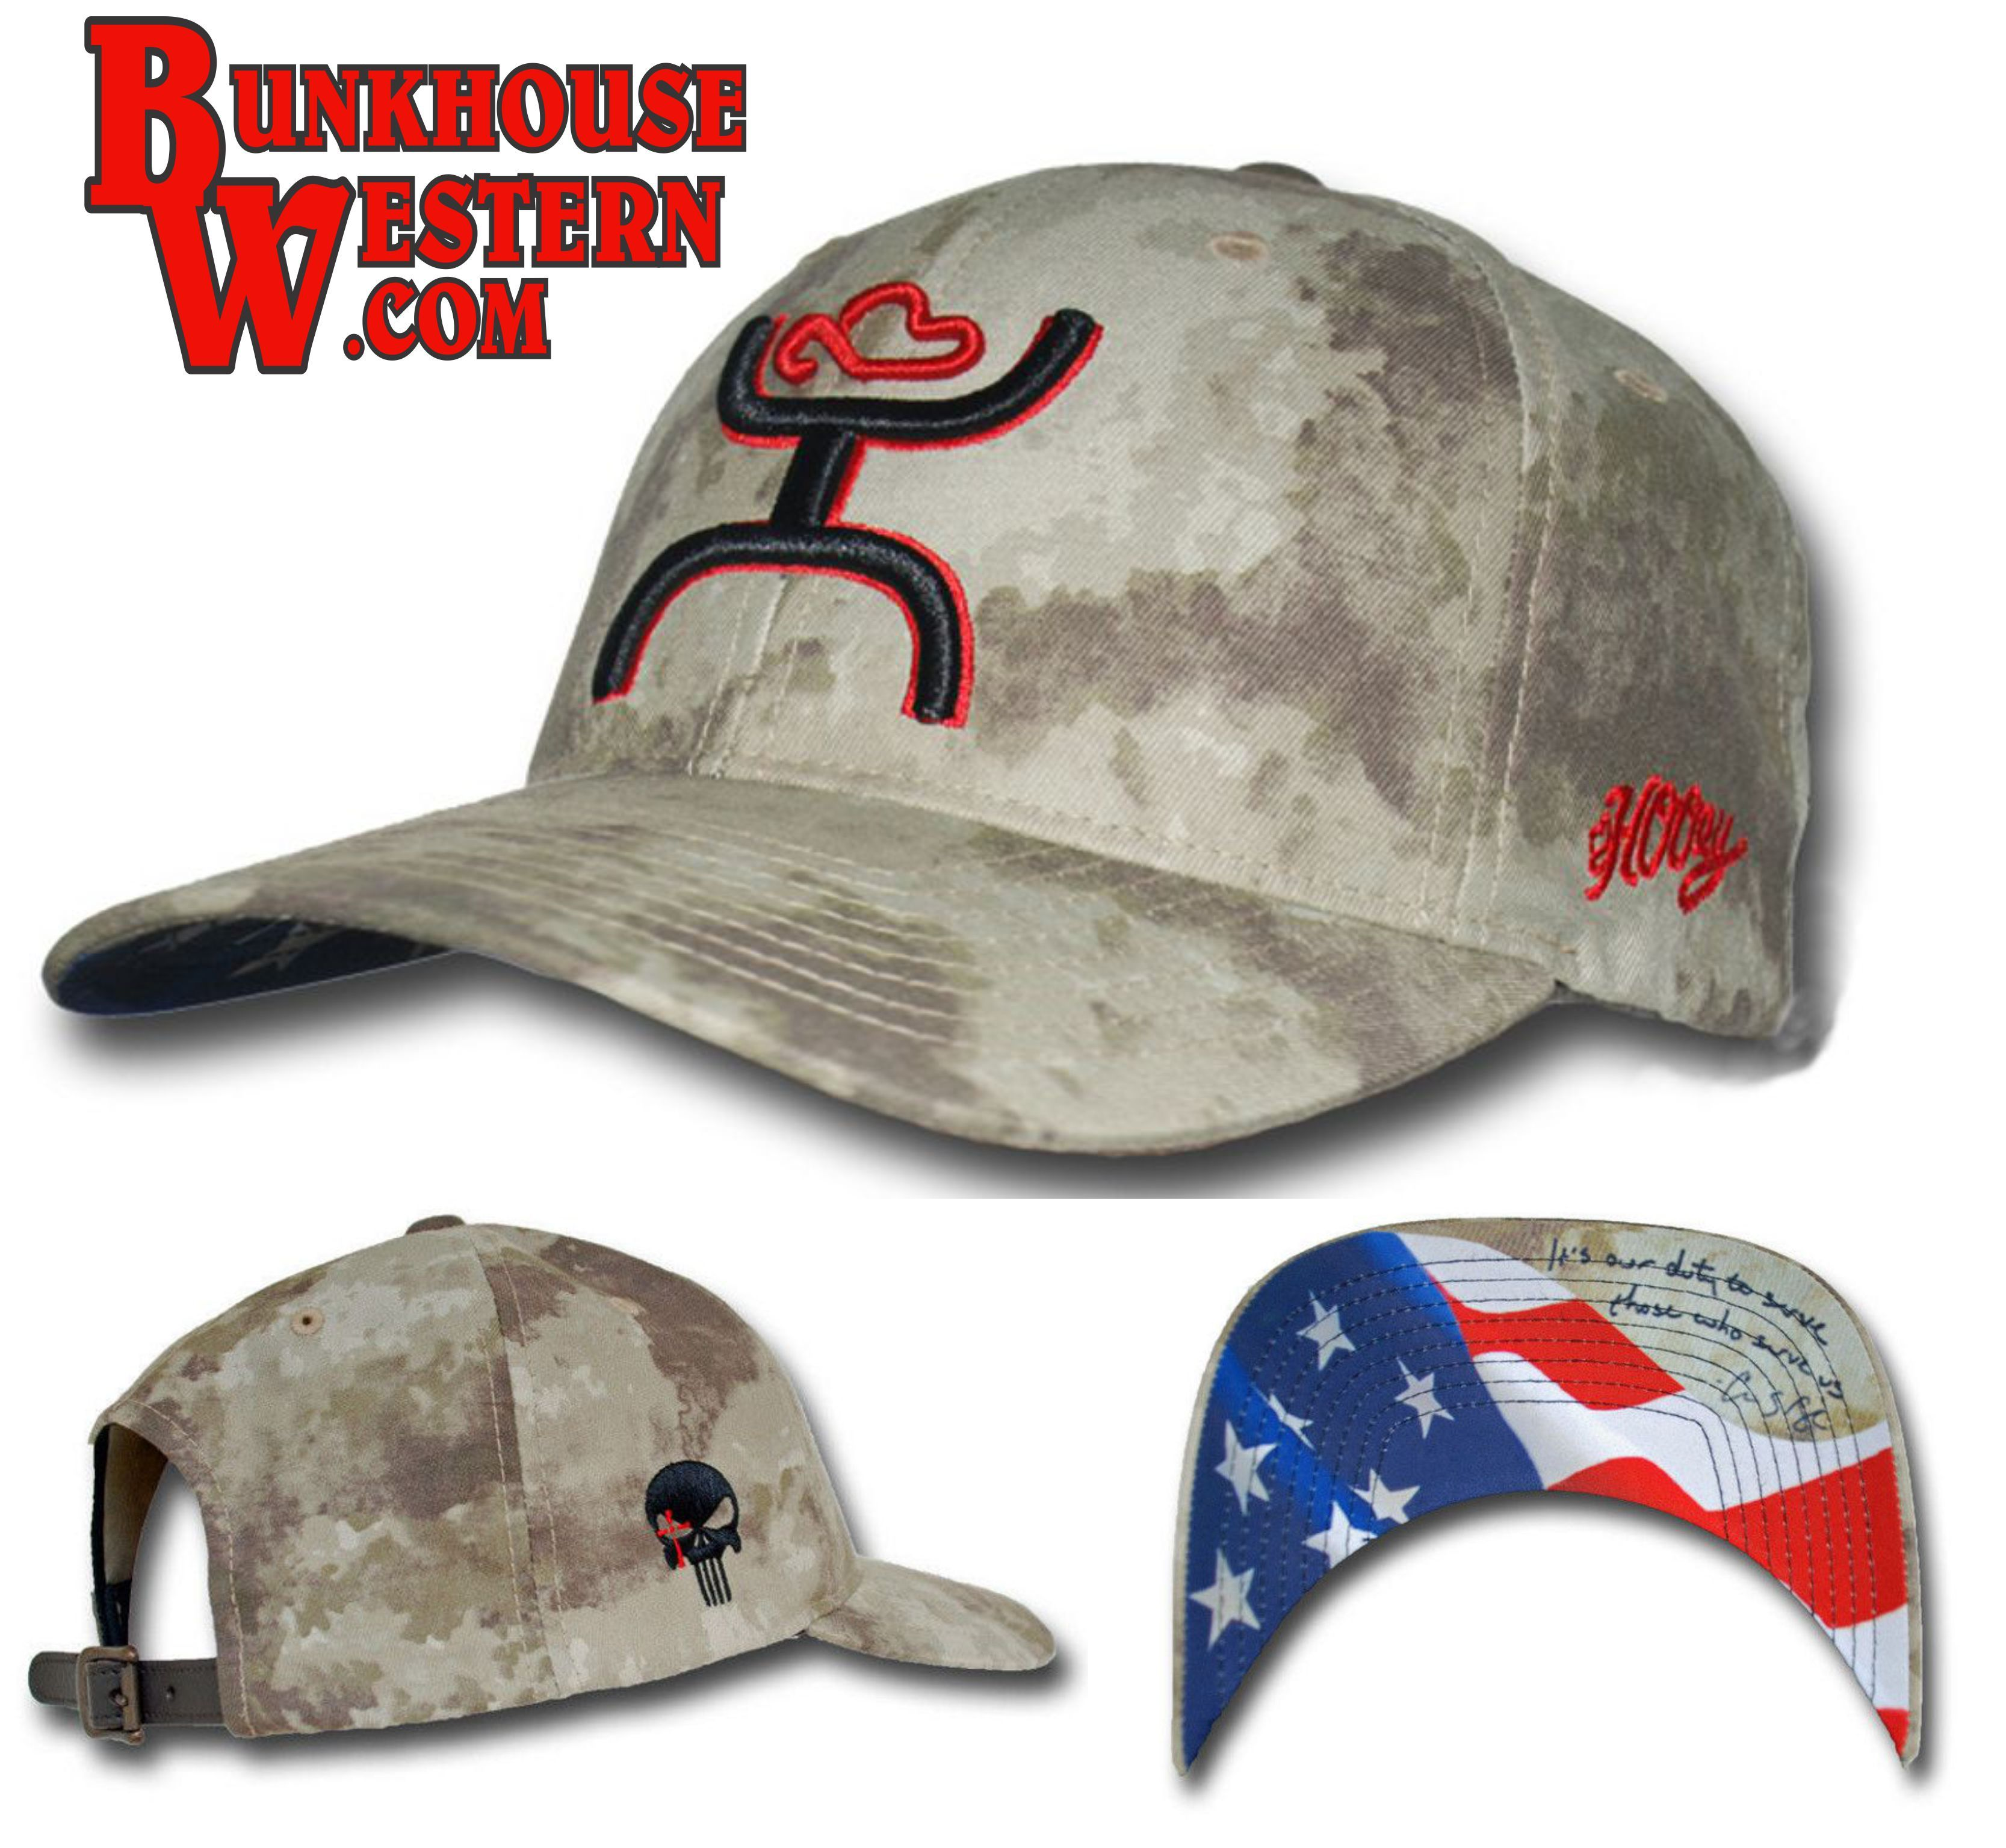 Pin by Brandon Stanton on Country in 2019 | Baseball hats